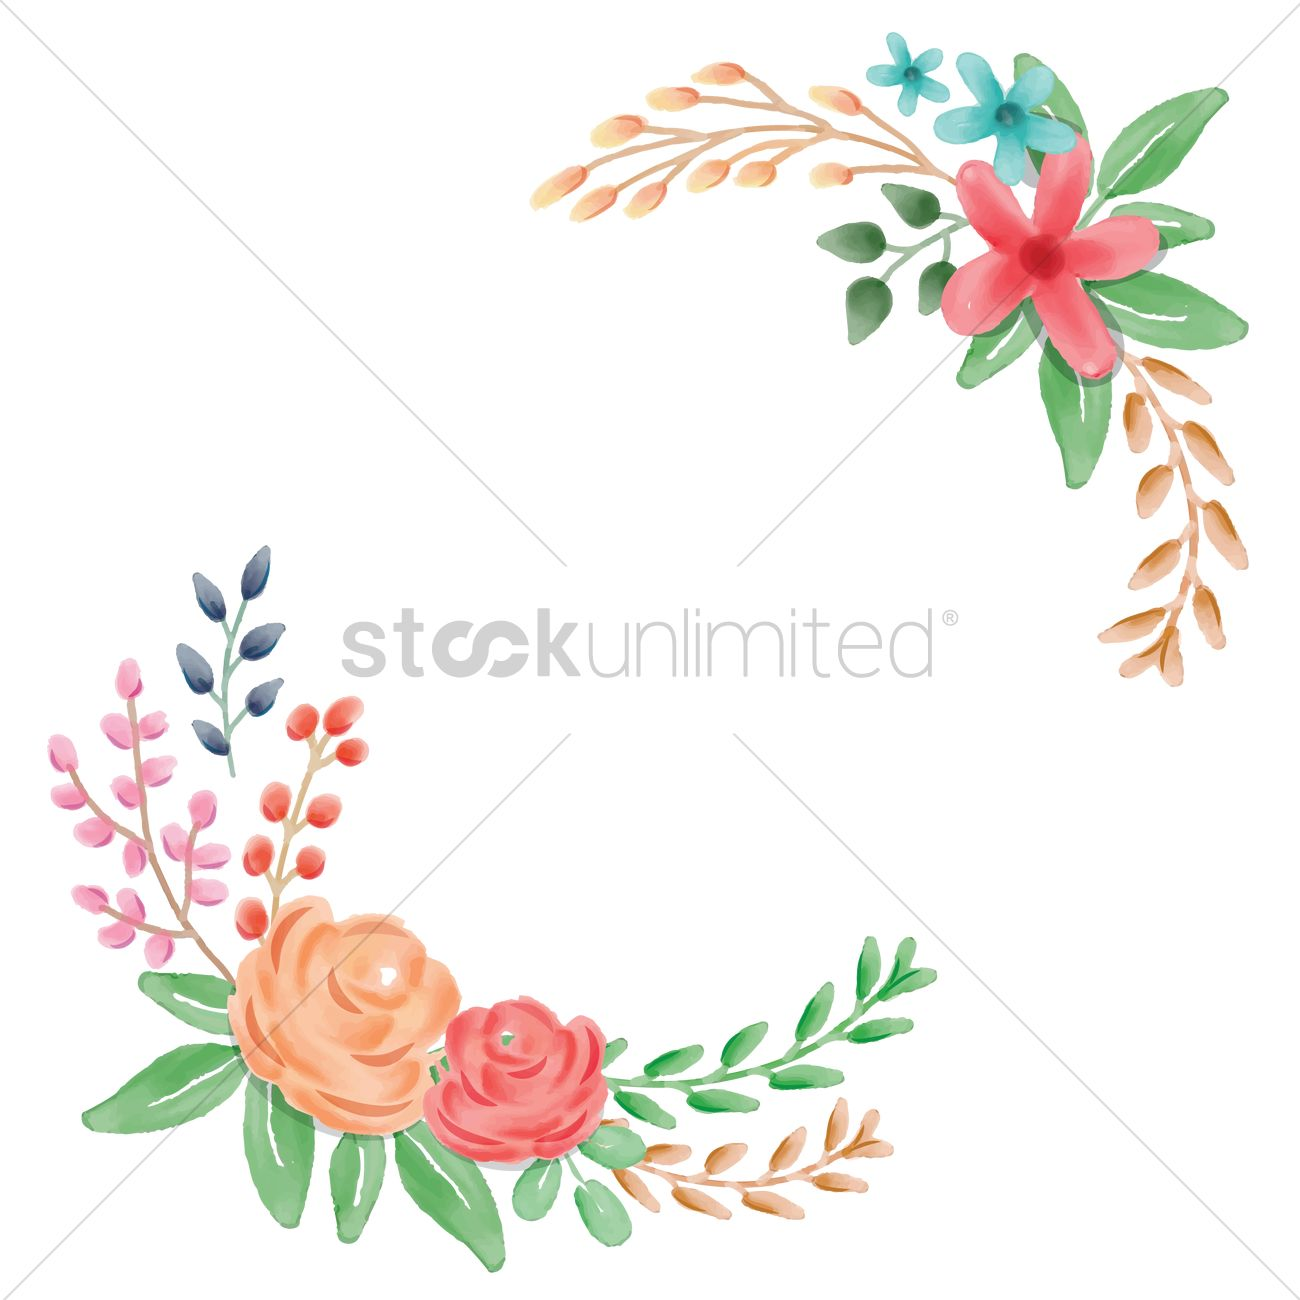 floral frame corner vector image 1694807 stockunlimited old photo frame with corner and empty field for your